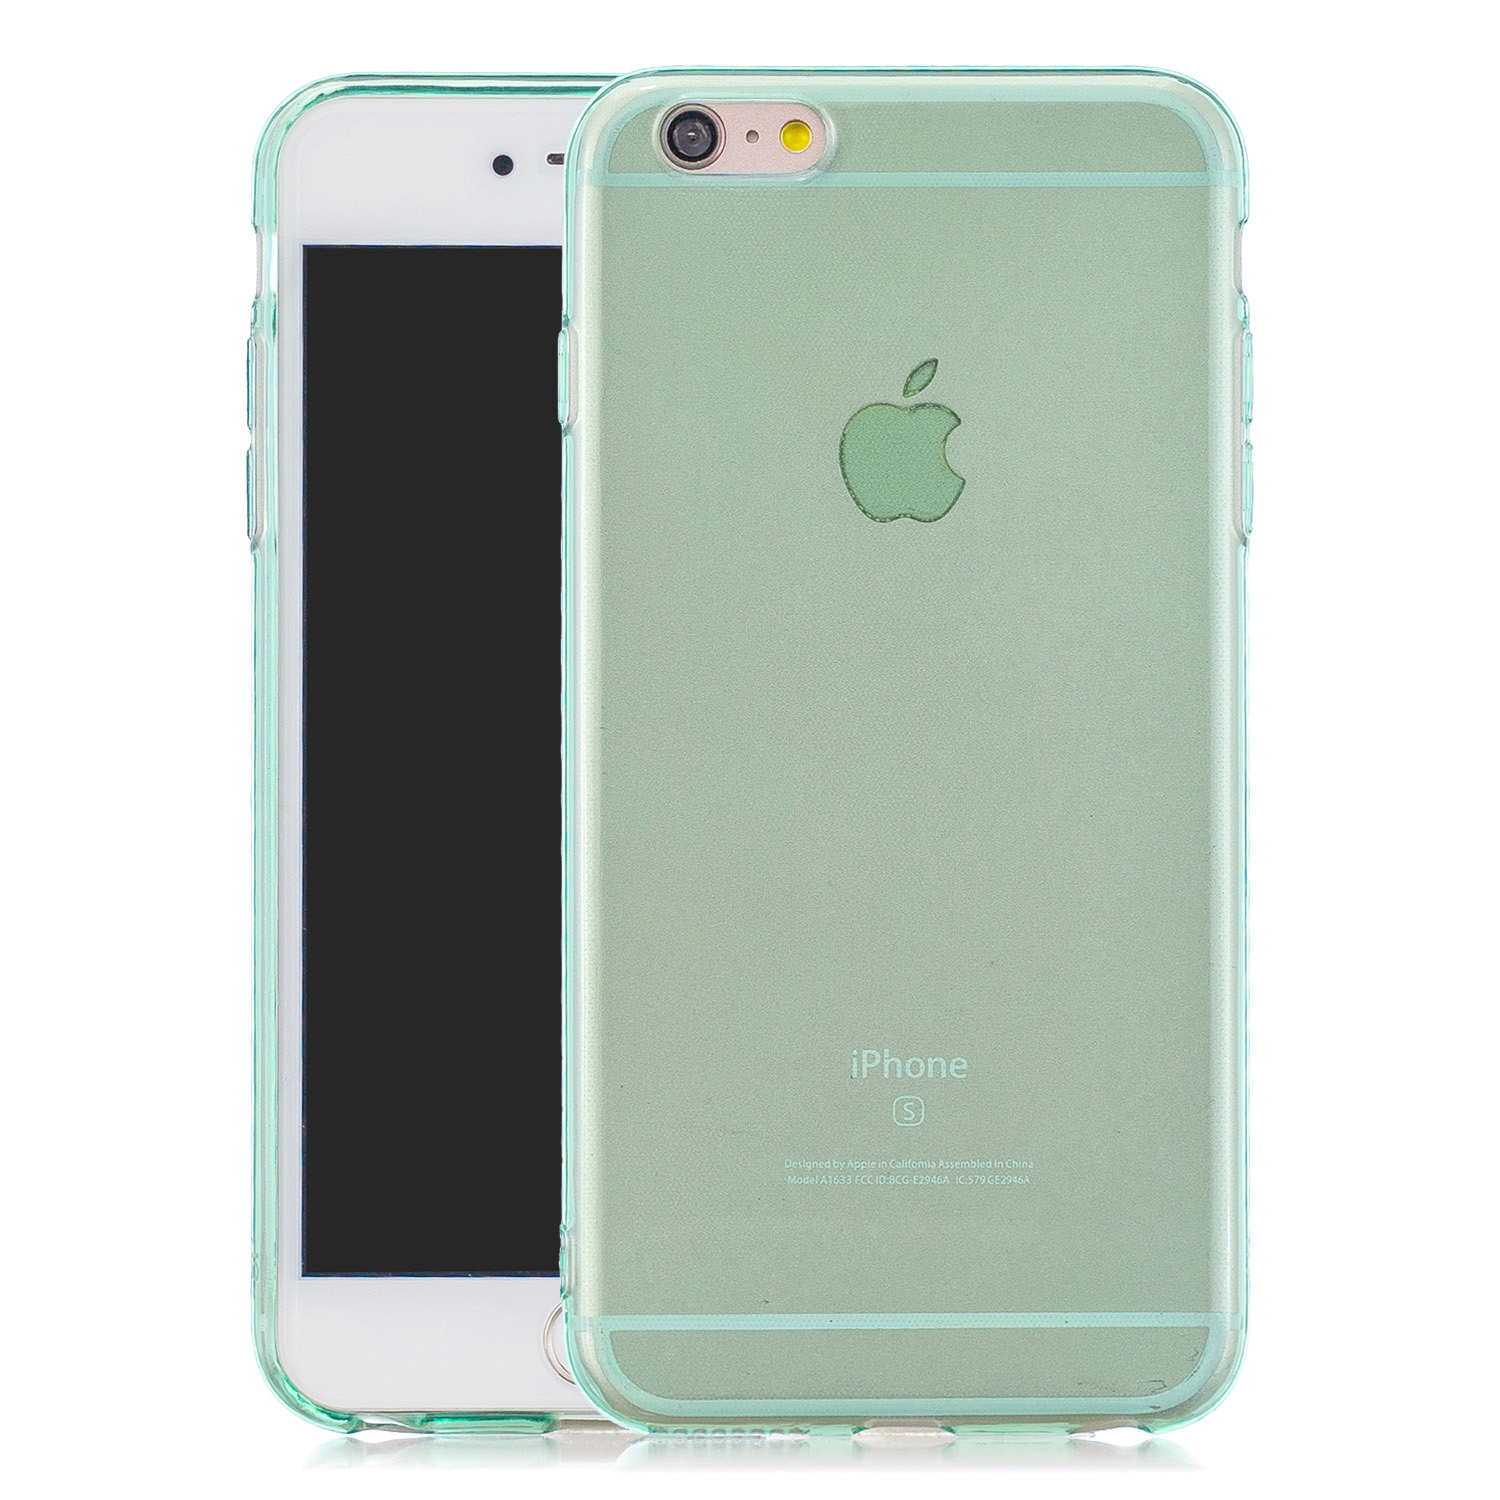 for iPhone 6/6S / 6 Plus/6S Plus / 7/8 / 7 Plus/8 Plus Clear Colorful TPU Back Cover Cellphone Case Shell Green